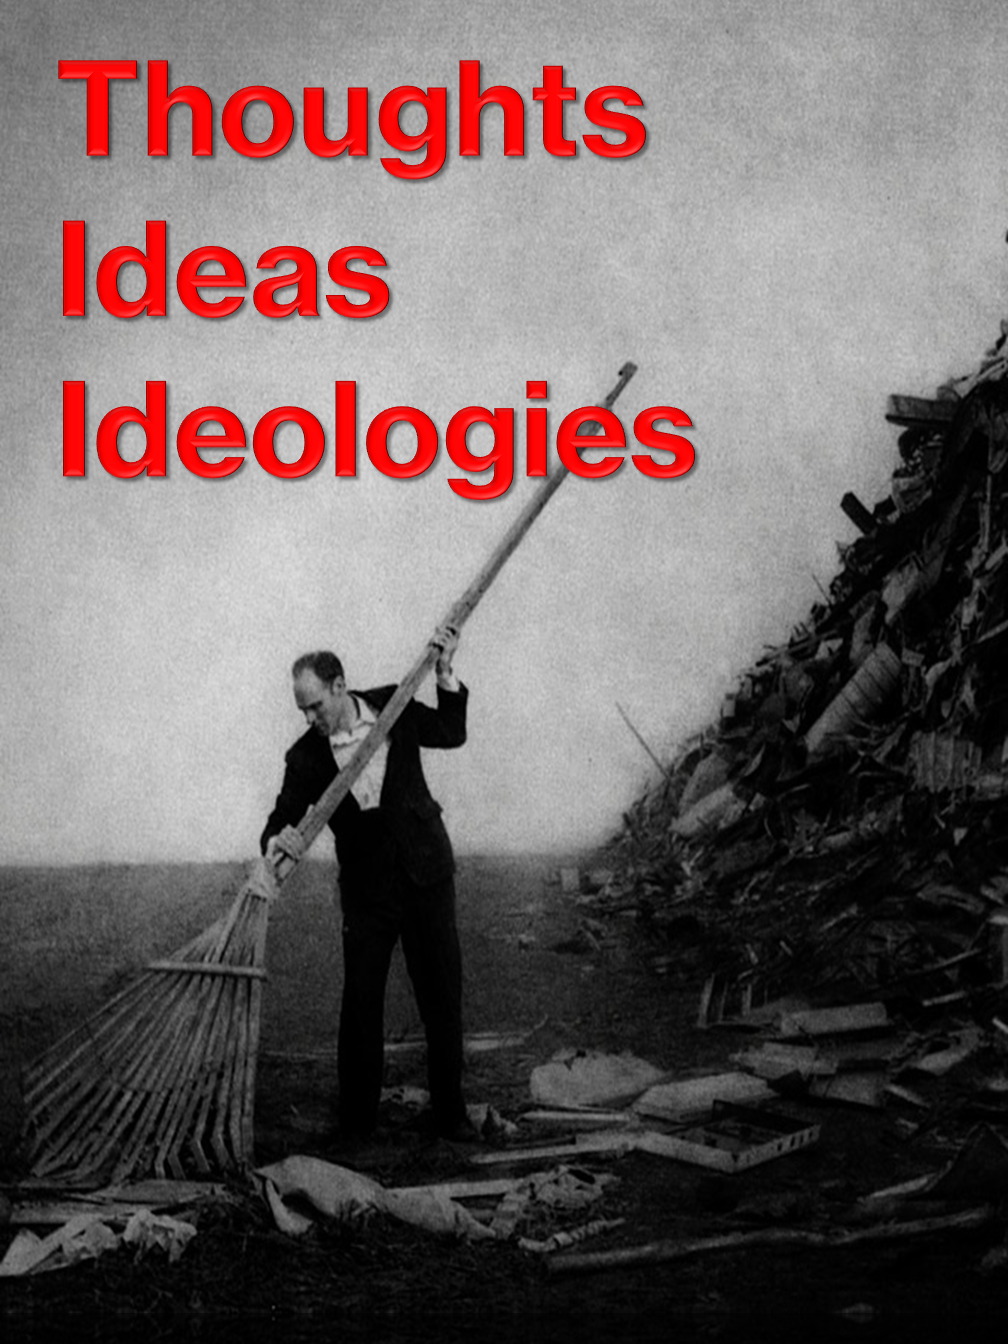 Thoughts-Ideas-Ideologies